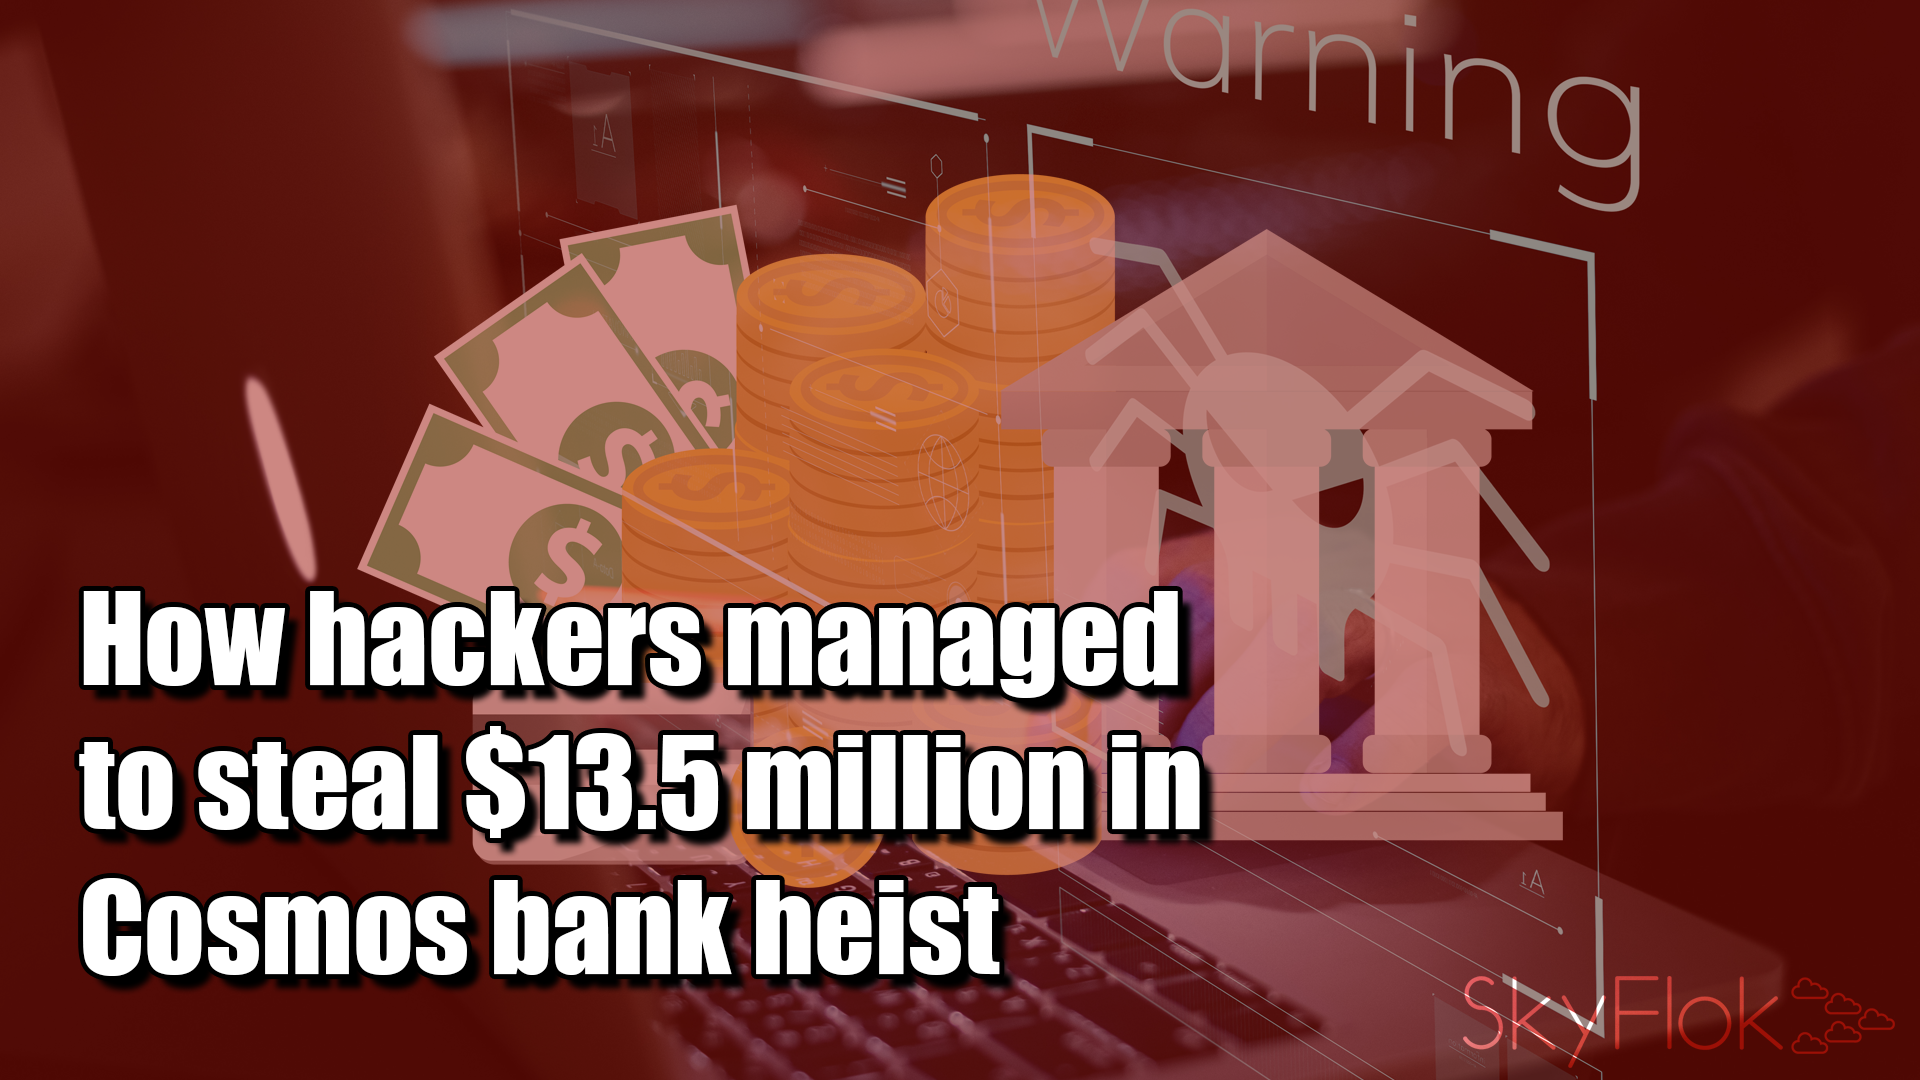 How hackers managed to steal $13.5 million in Cosmos bank heist